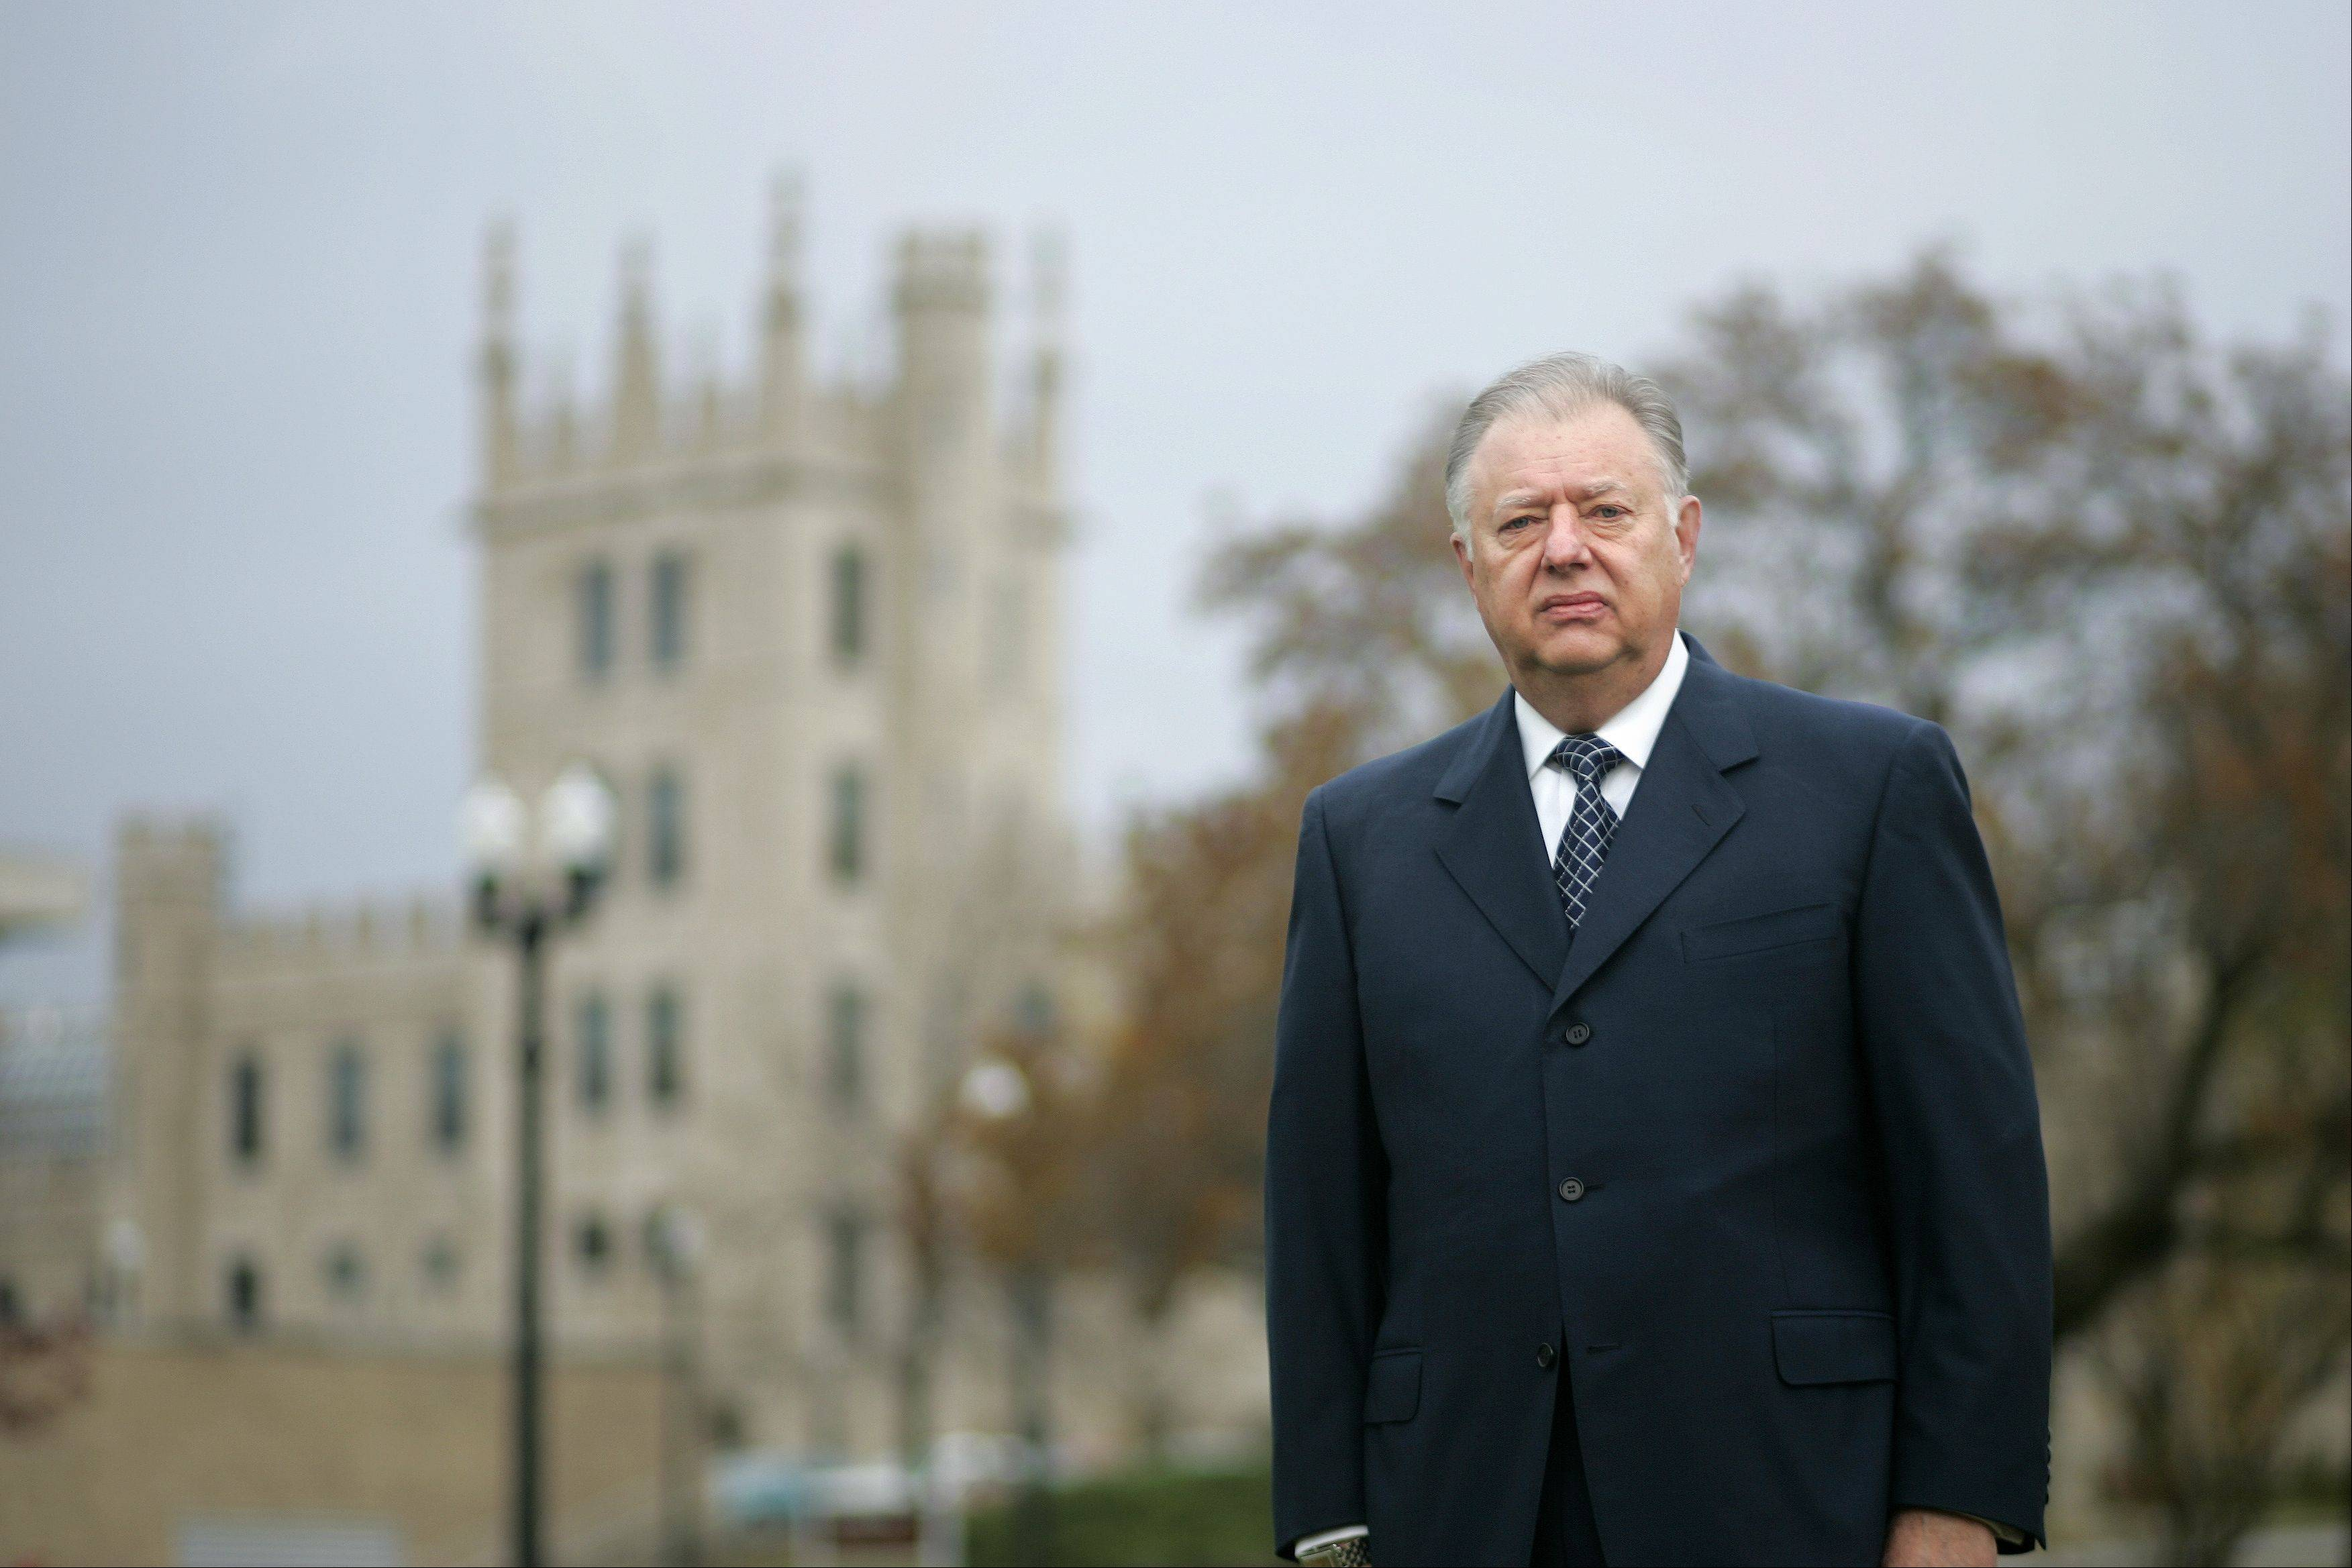 BRIAN HILL/bhill@dailyherald.com, 2008 John Peters' tenure as Northern Illinois University president will end June 30.